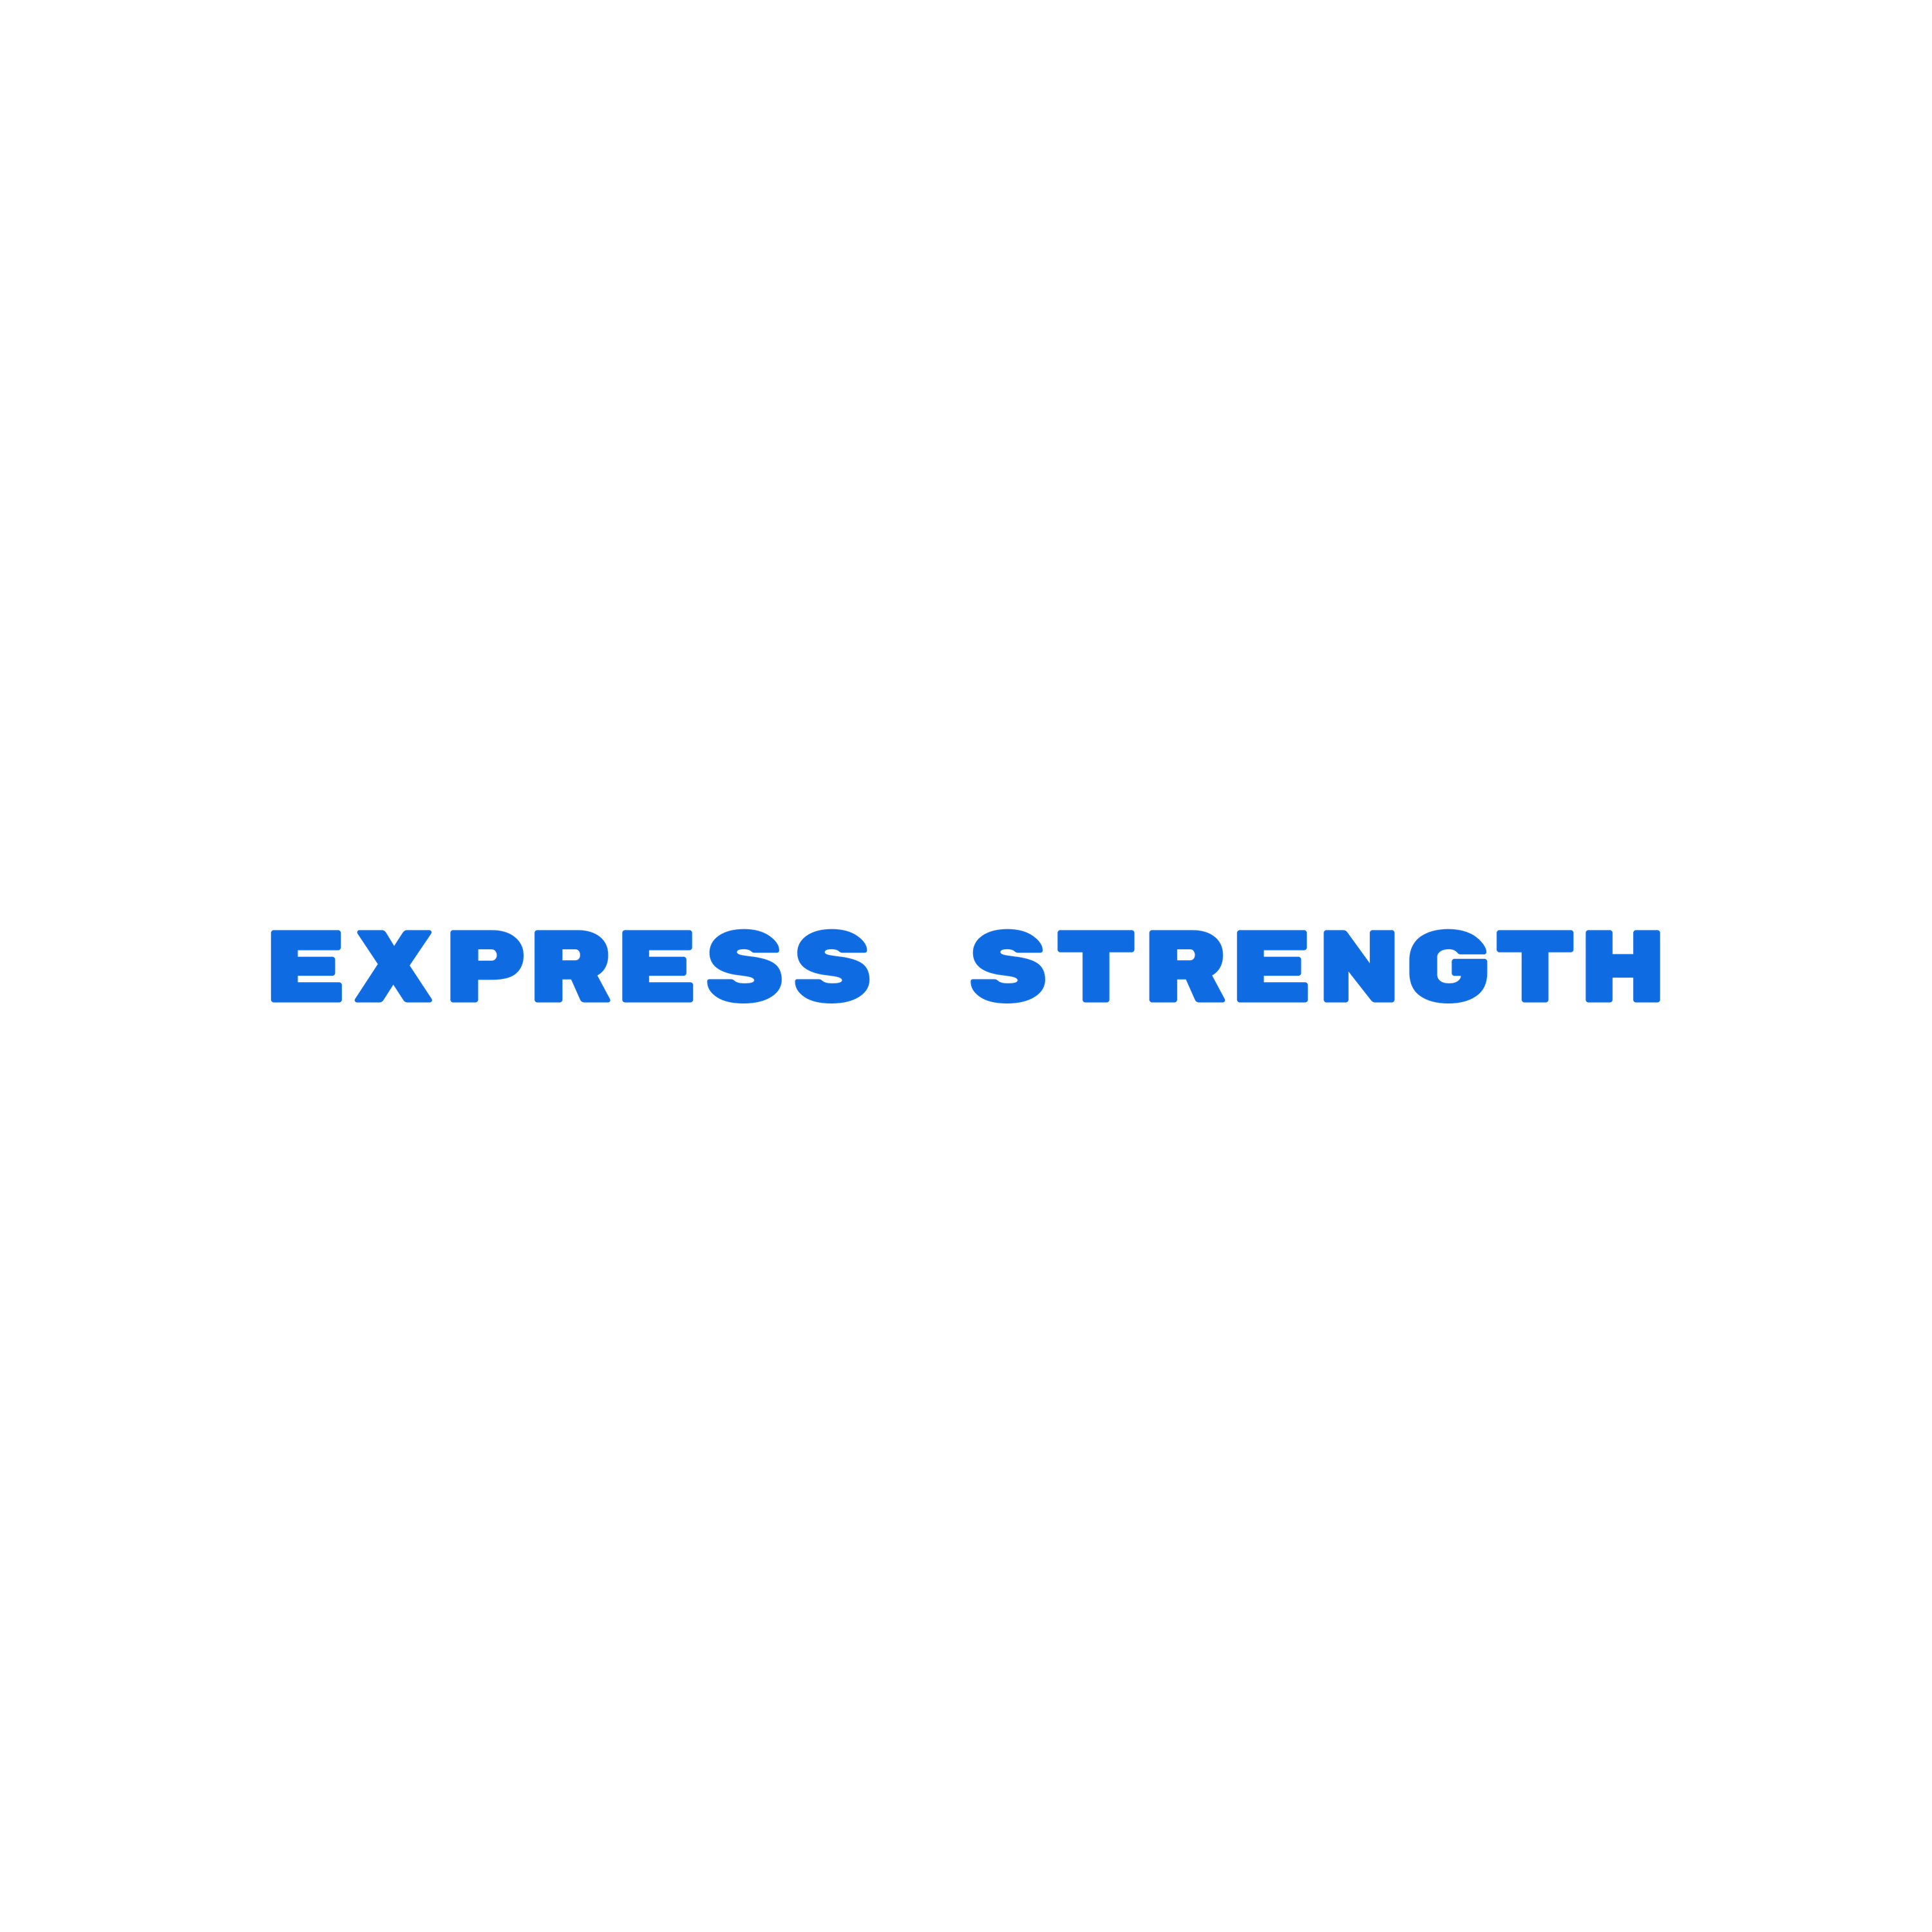 express strength